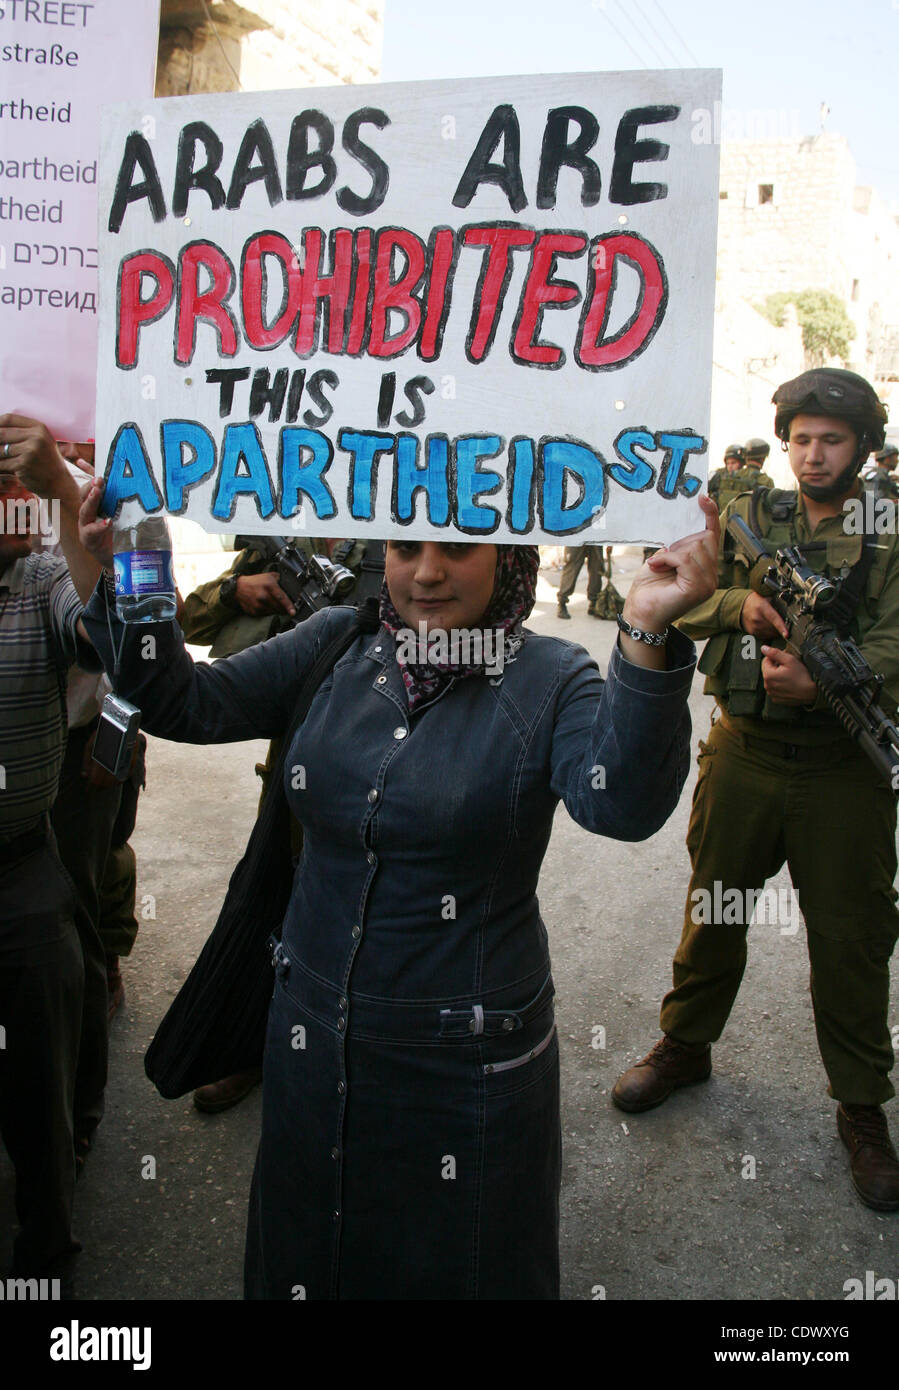 Palestinians take part in a rally against the closure of Shuhada Street in Hebron, the main artery blocked by an - Stock Image